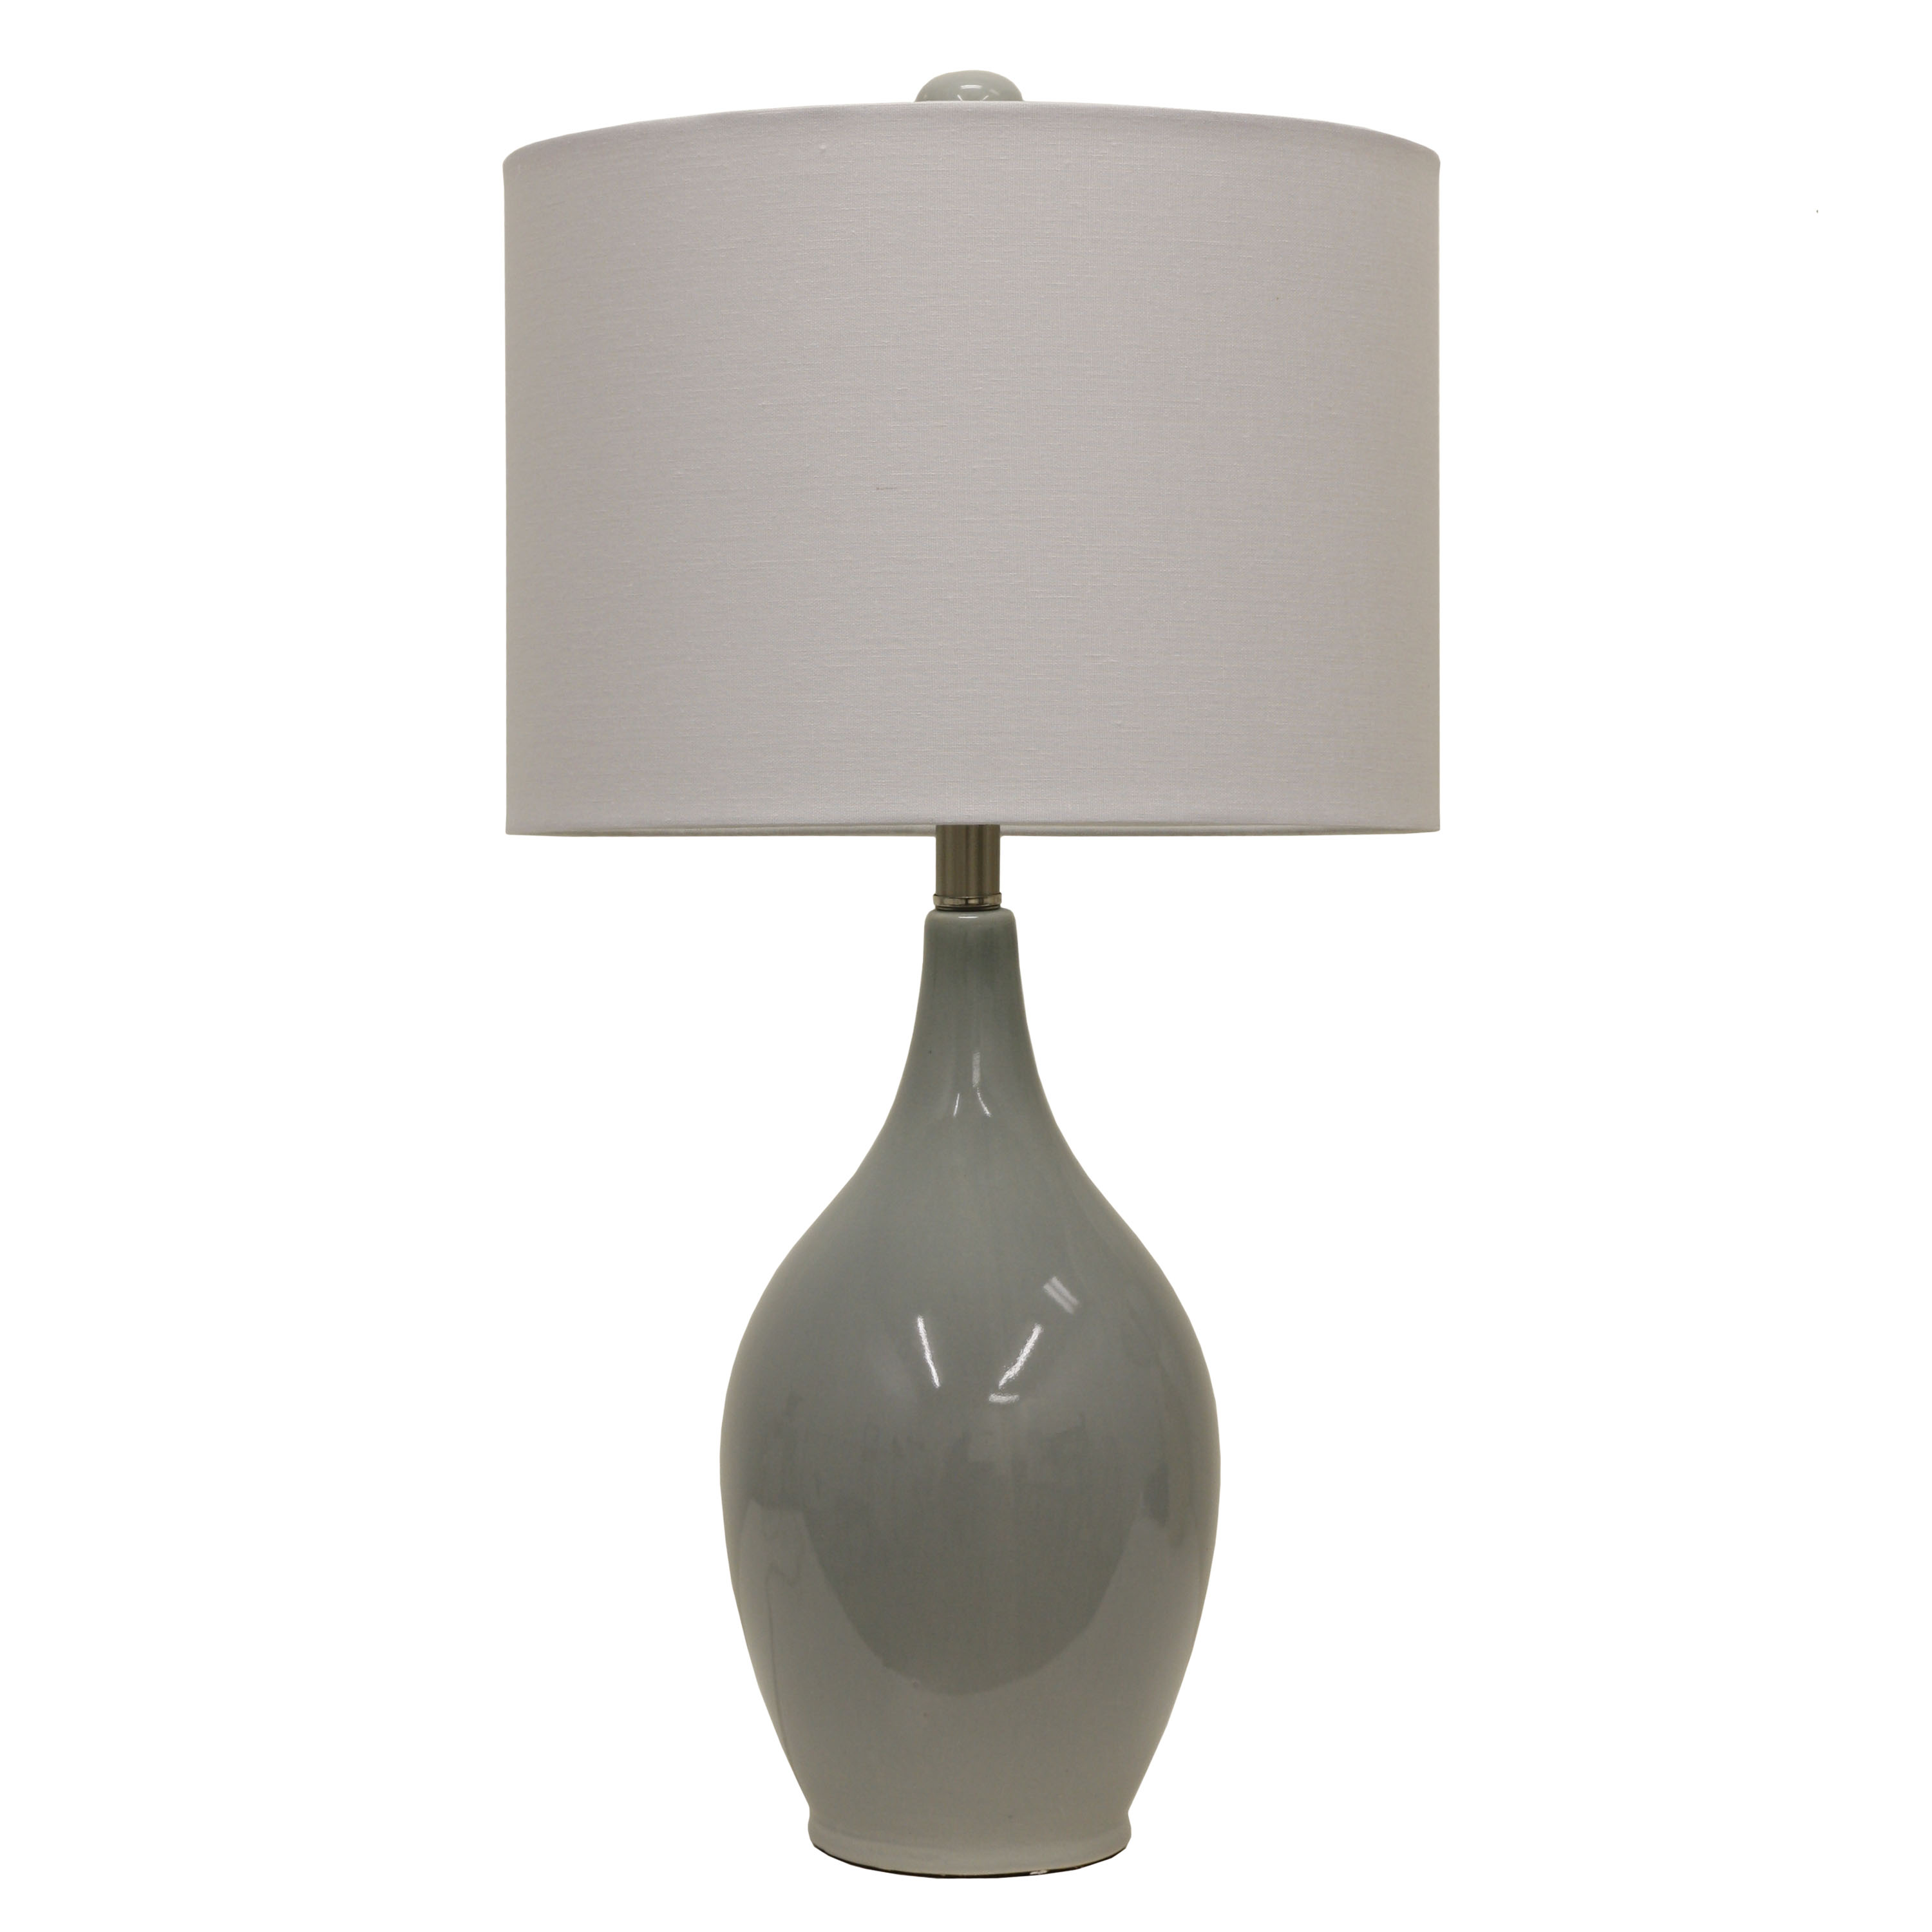 Anabelle Ceramic Table Lamp by Jimco Lamp